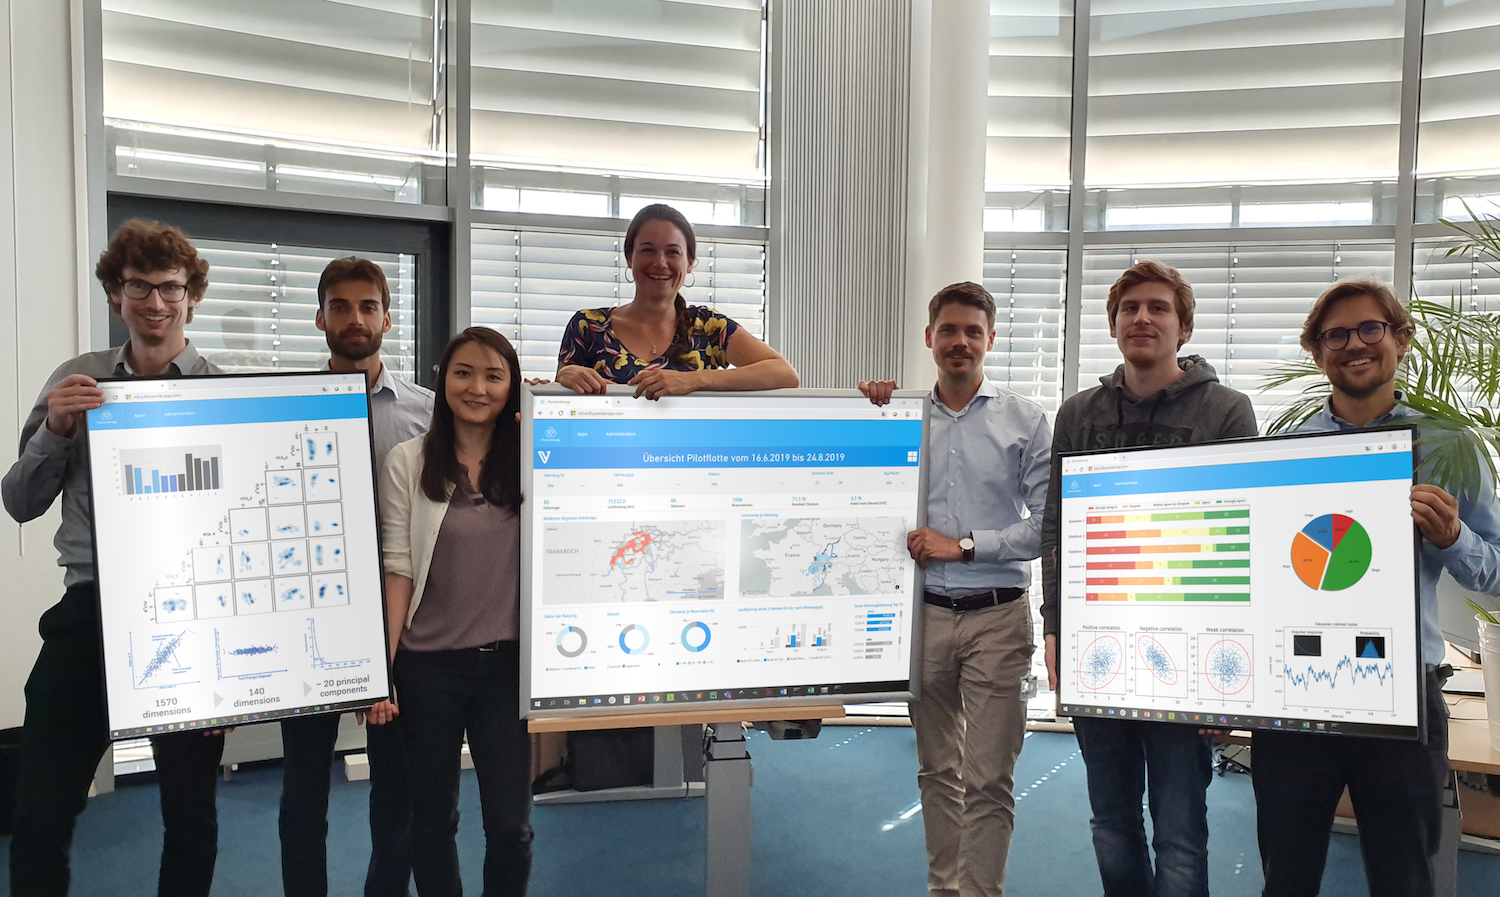 """thyssenkrupp's """"Digitized Expertise"""" comprises an international team of experts who work in close contact with customers and thyssenkrupp service employees to transfer insights from data analytics and AI to everyday production."""